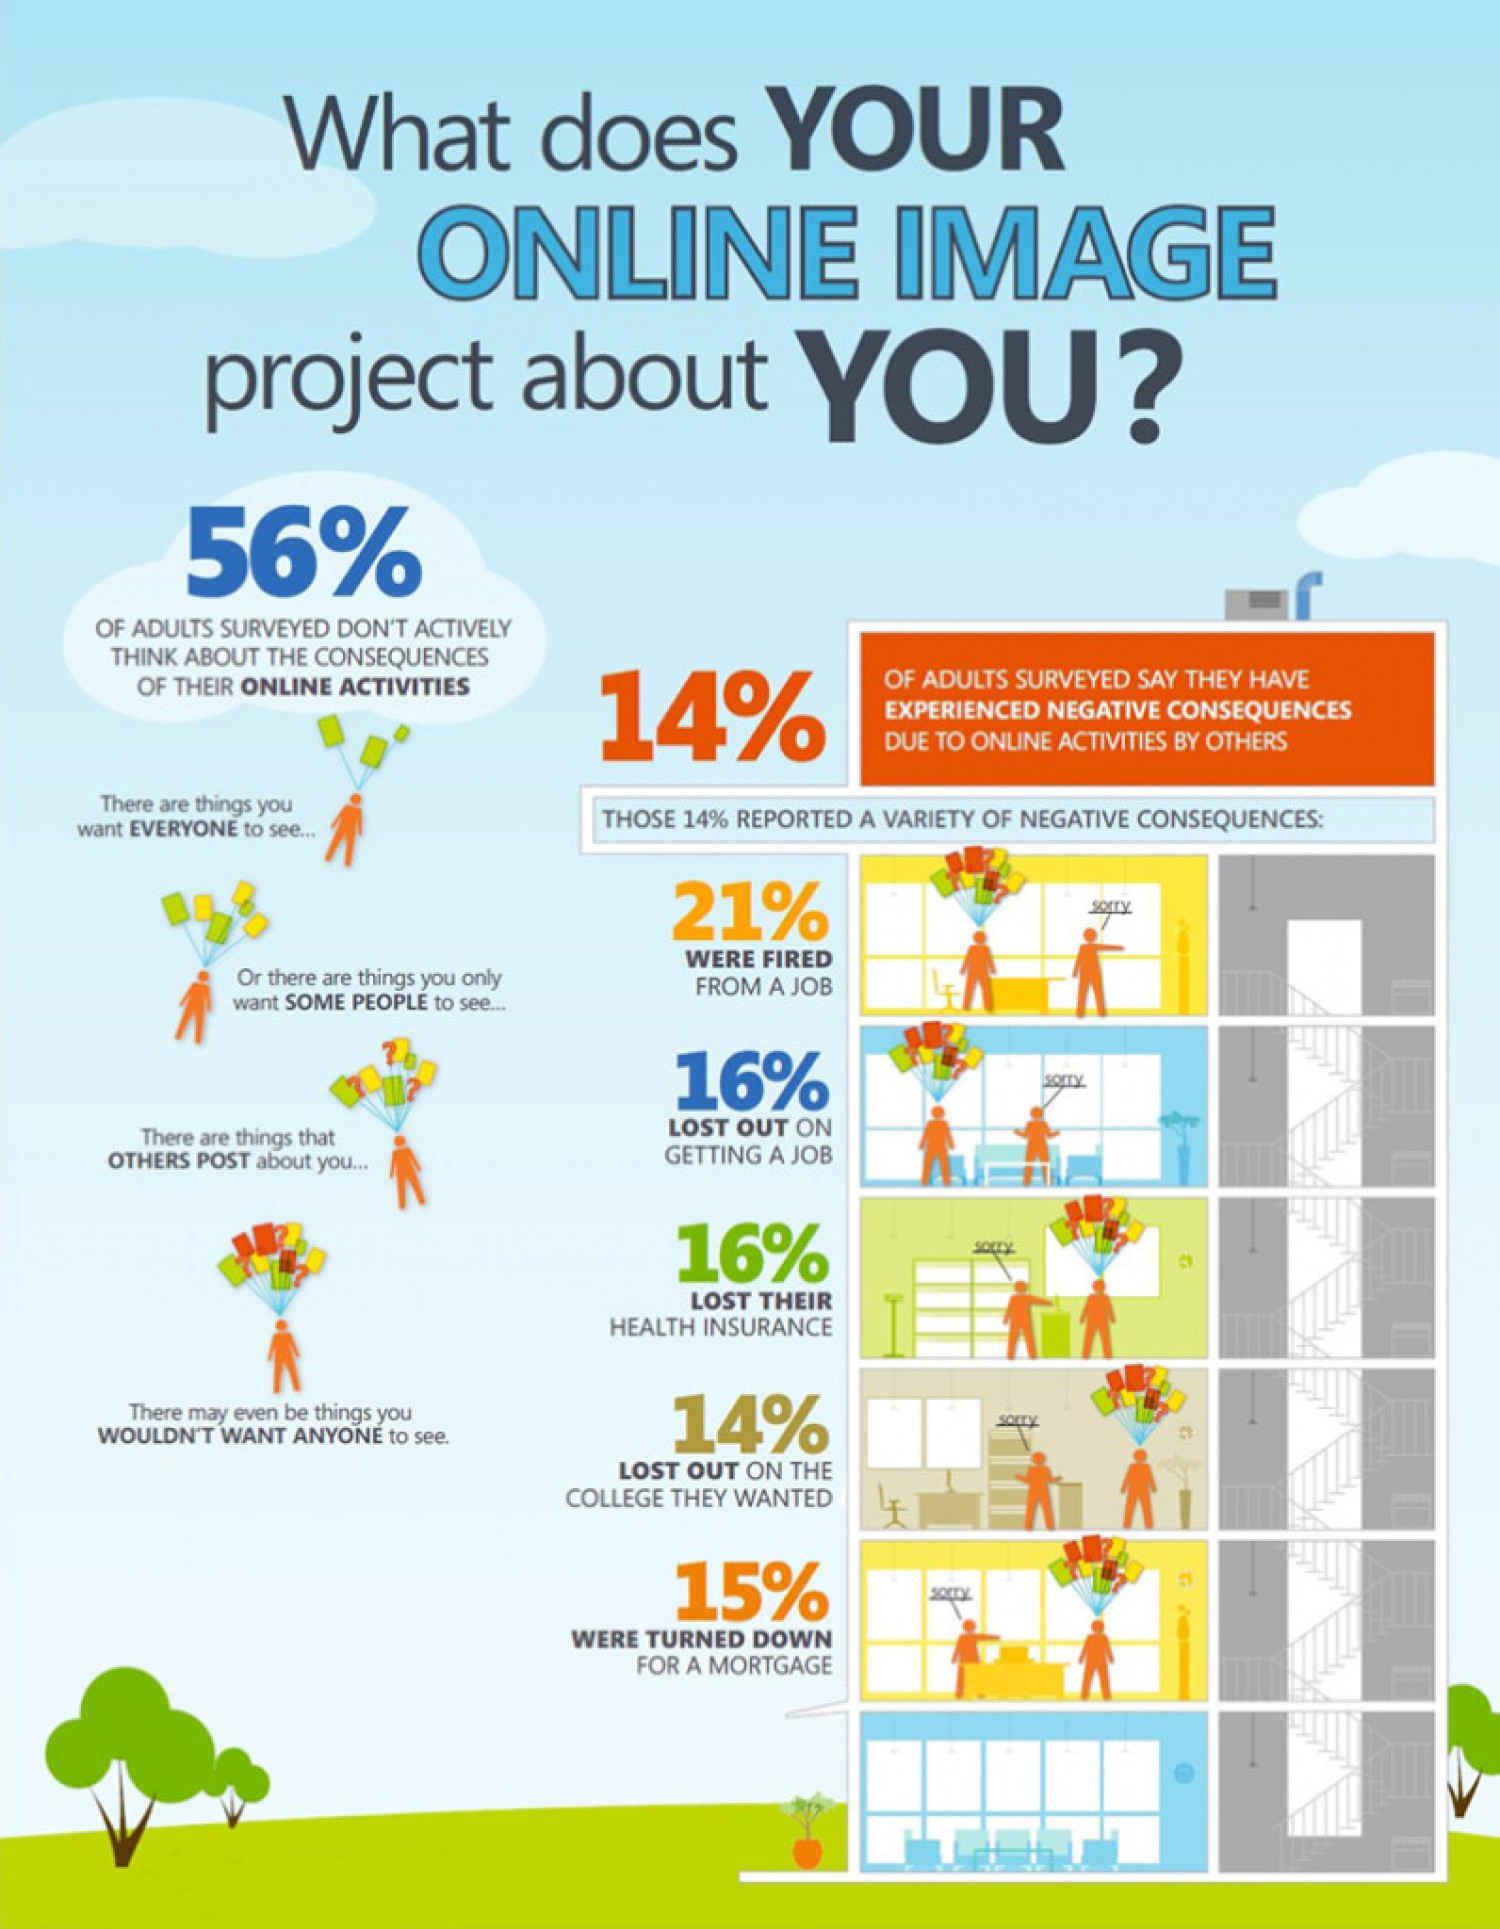 Do you need reputation management? Infographic